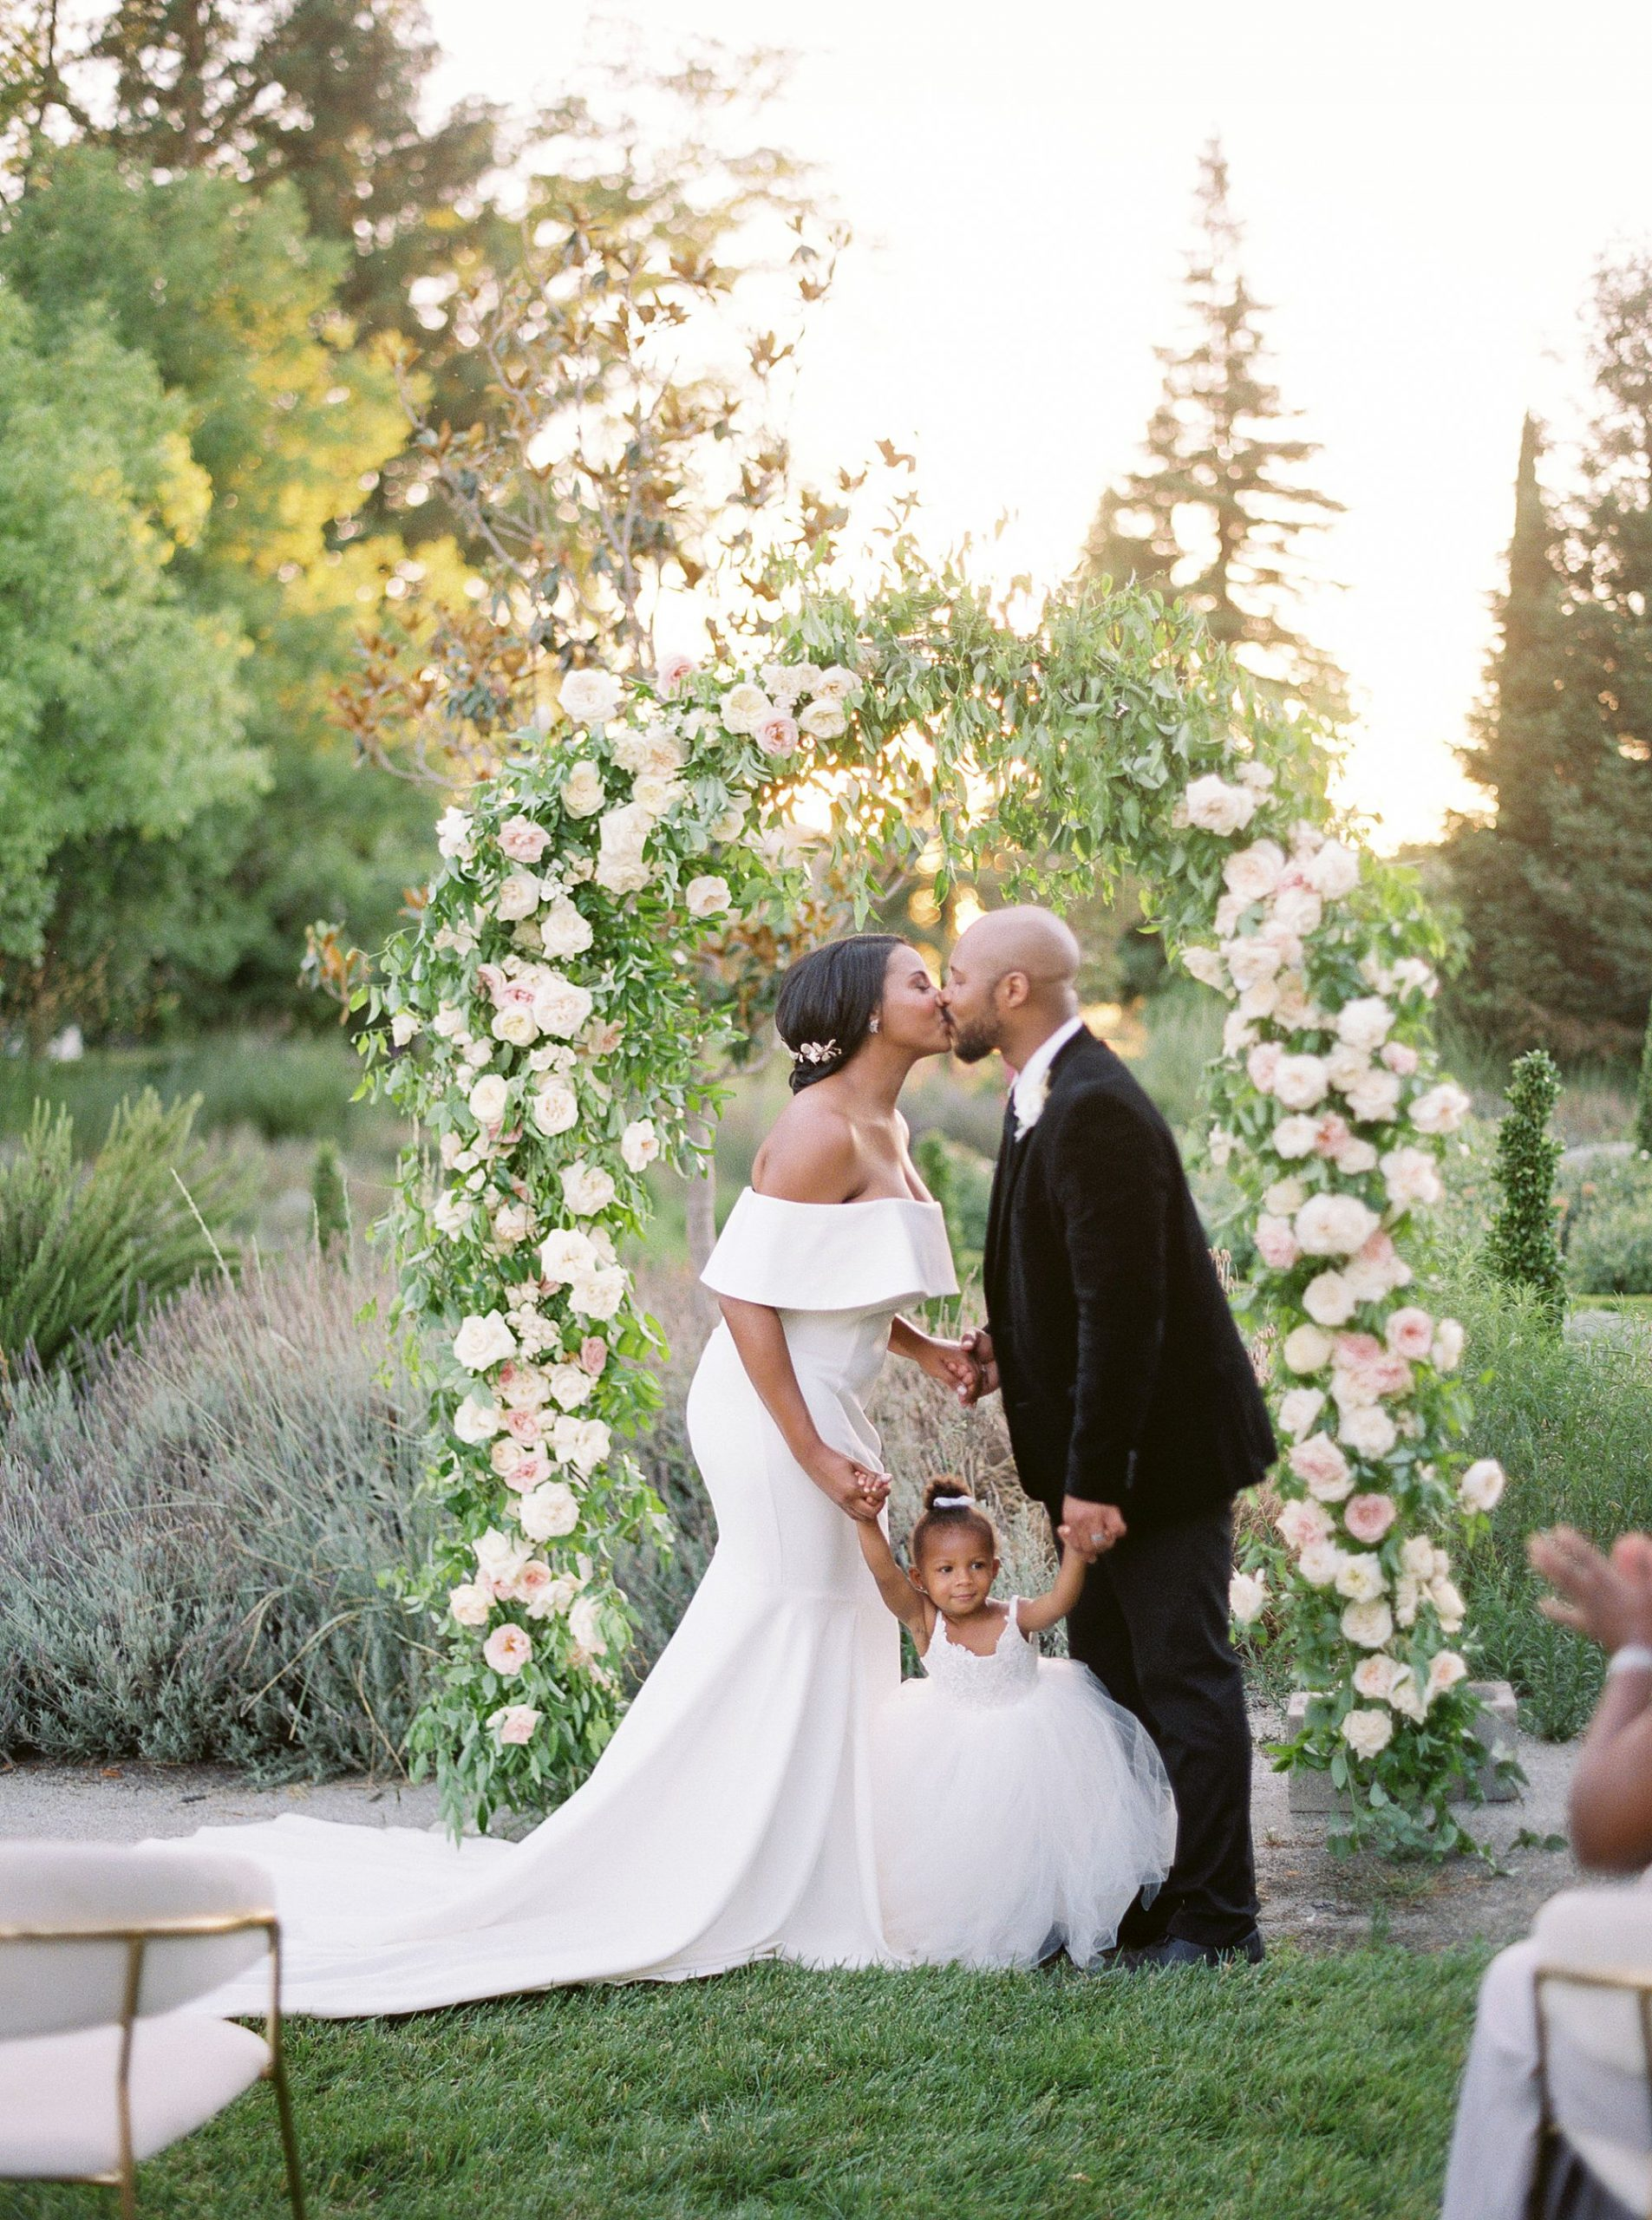 Park Winters Micro-Wedding Inspiration on Style Me Pretty - Stephanie Teague Events - Ashley Baumgartner - Park Winters Wedding - Black Tie Wedding - Micro-Wedding Sacramento Photographer_0012.jpg